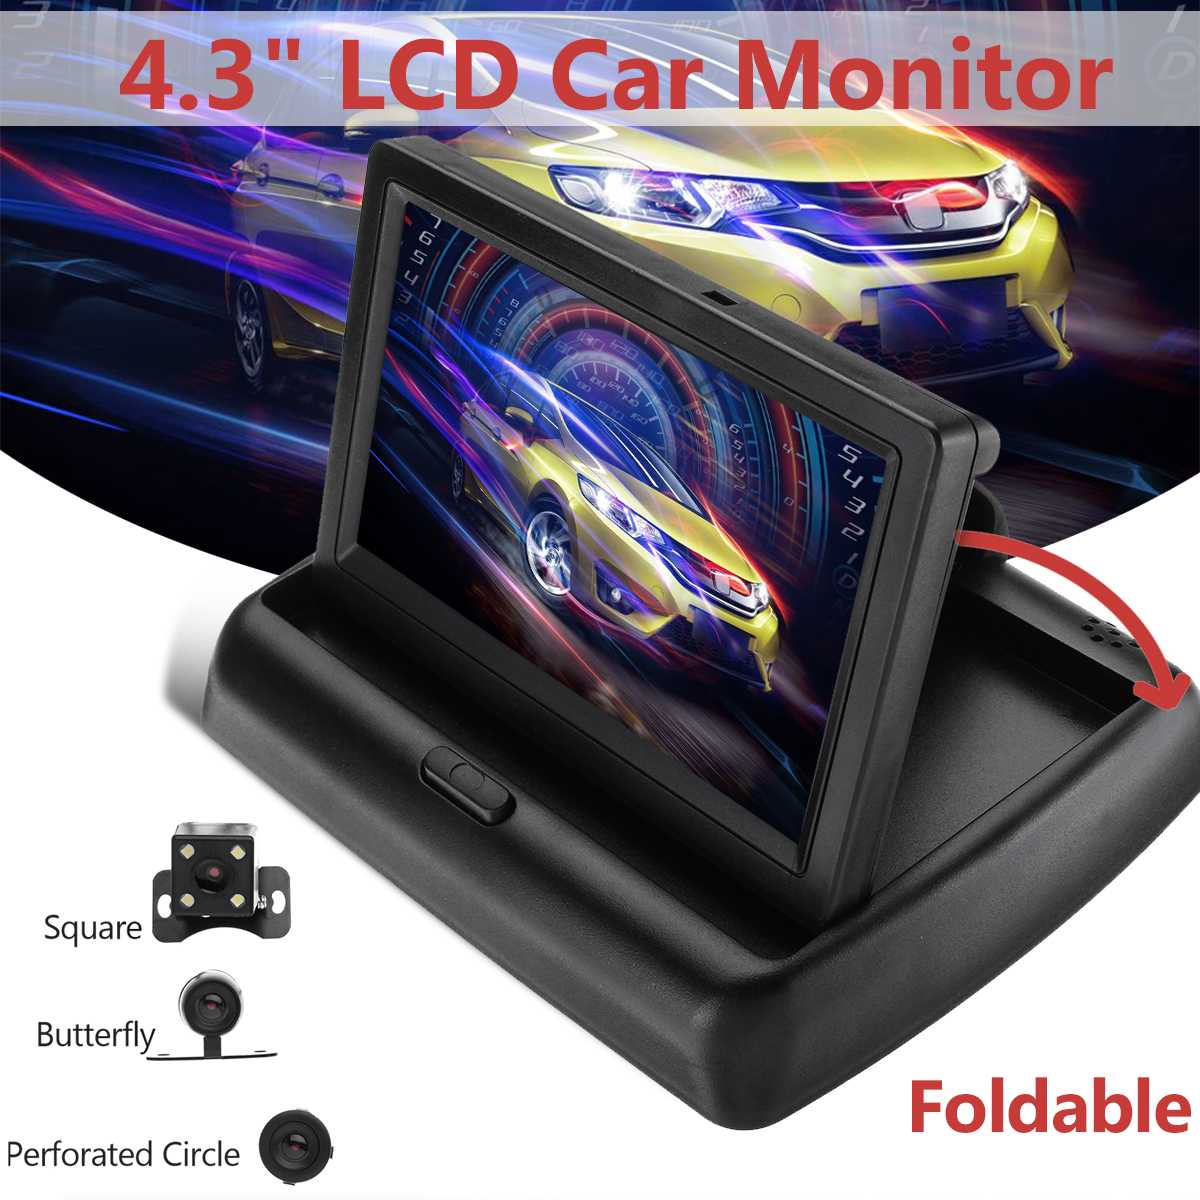 <font><b>4.3</b></font> <font><b>Inch</b></font> <font><b>TFT</b></font> LCD Car Monitor Foldable Monitor Display Reverse Camera Parking System for Car Rearview Monitors image